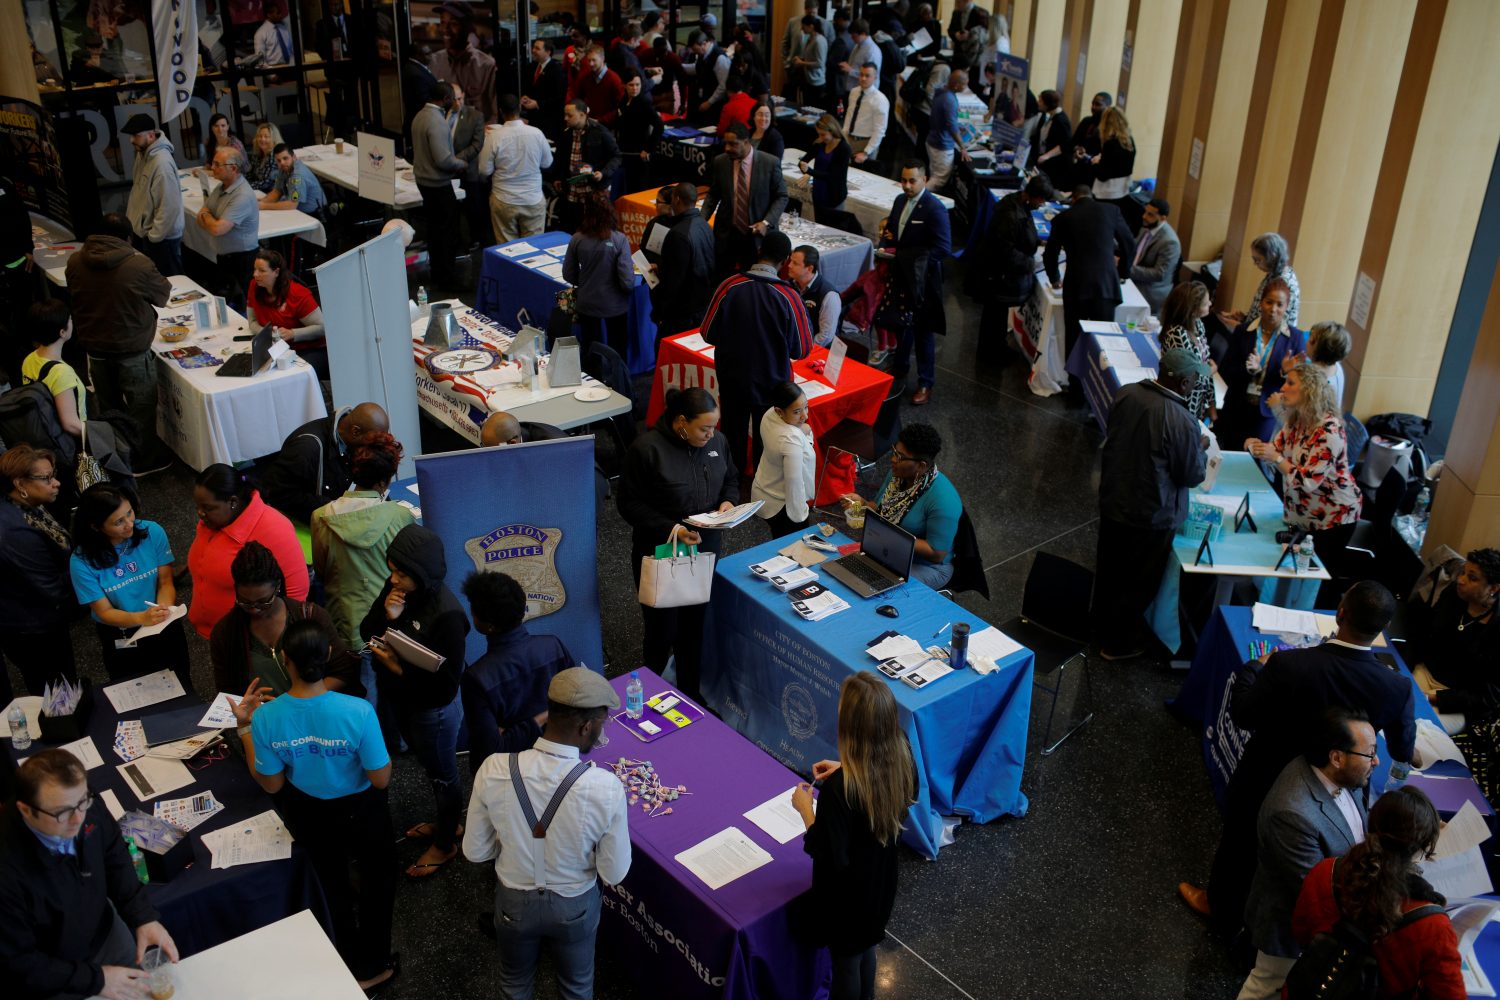 FILE PHOTO: Job seekers speak with potential employers at a City of Boston Neighborhood Career Fair on May Day in Boston, Massachusetts, U.S., May 1, 2017. REUTERS/Brian Snyder